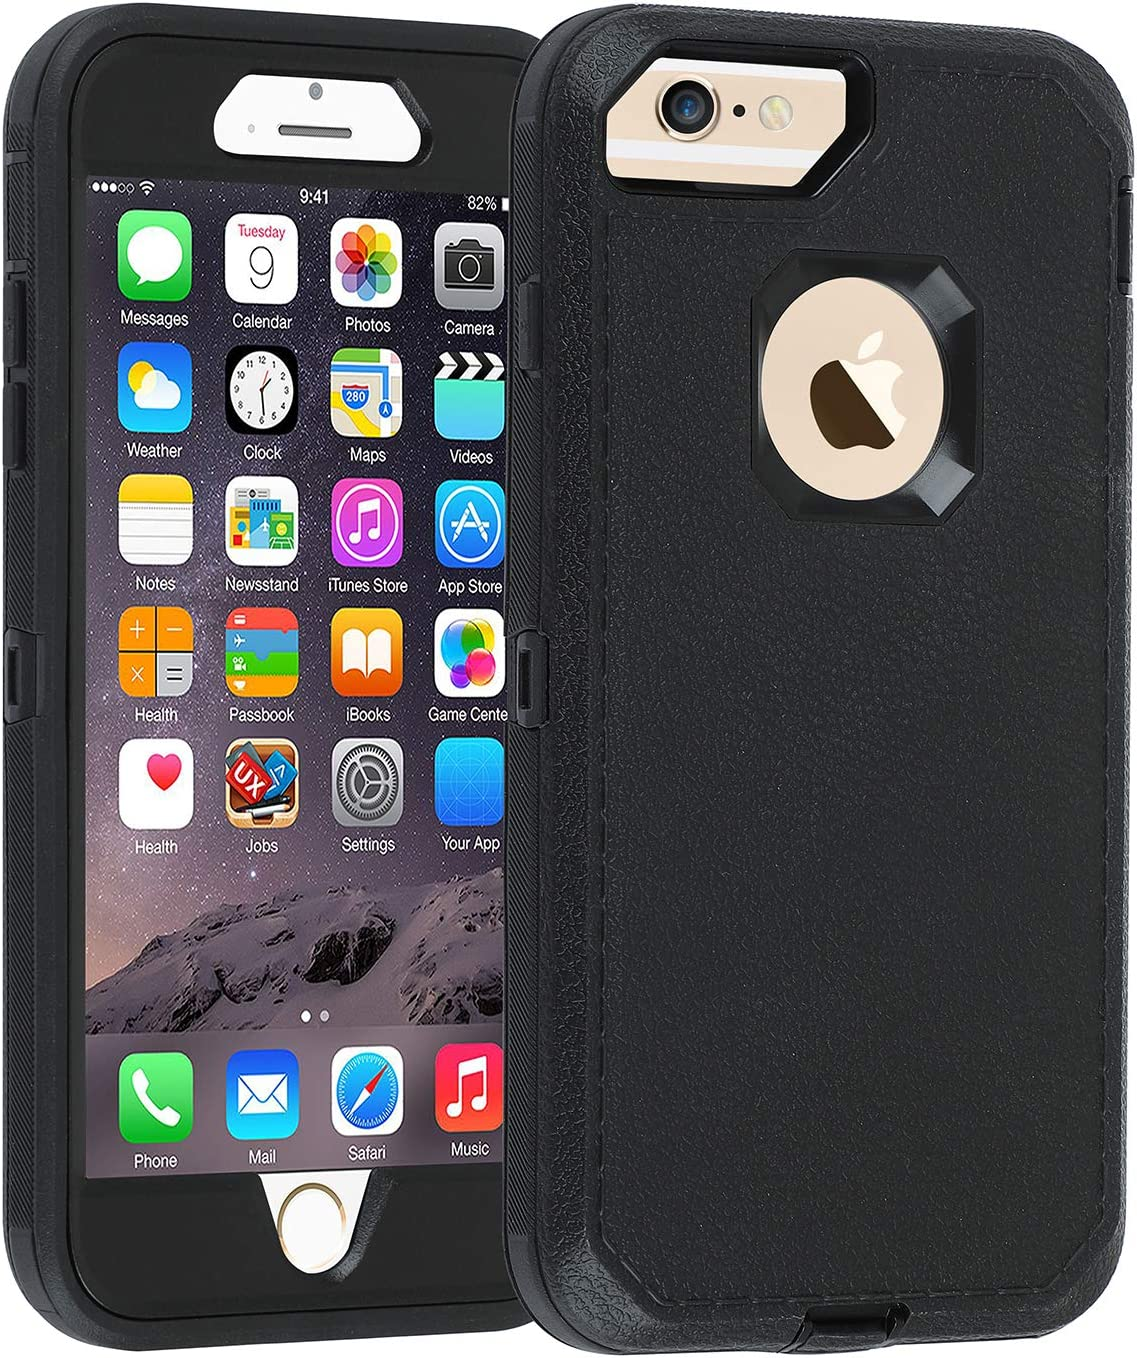 Co-Goldguard Case iPhone 7 Heavy Duty iPhone 8 Case Durable 3 in 1 Hard Cover Dust-Proof Shockproof Drop-Proof Scratch-Resistant Shell (Black)